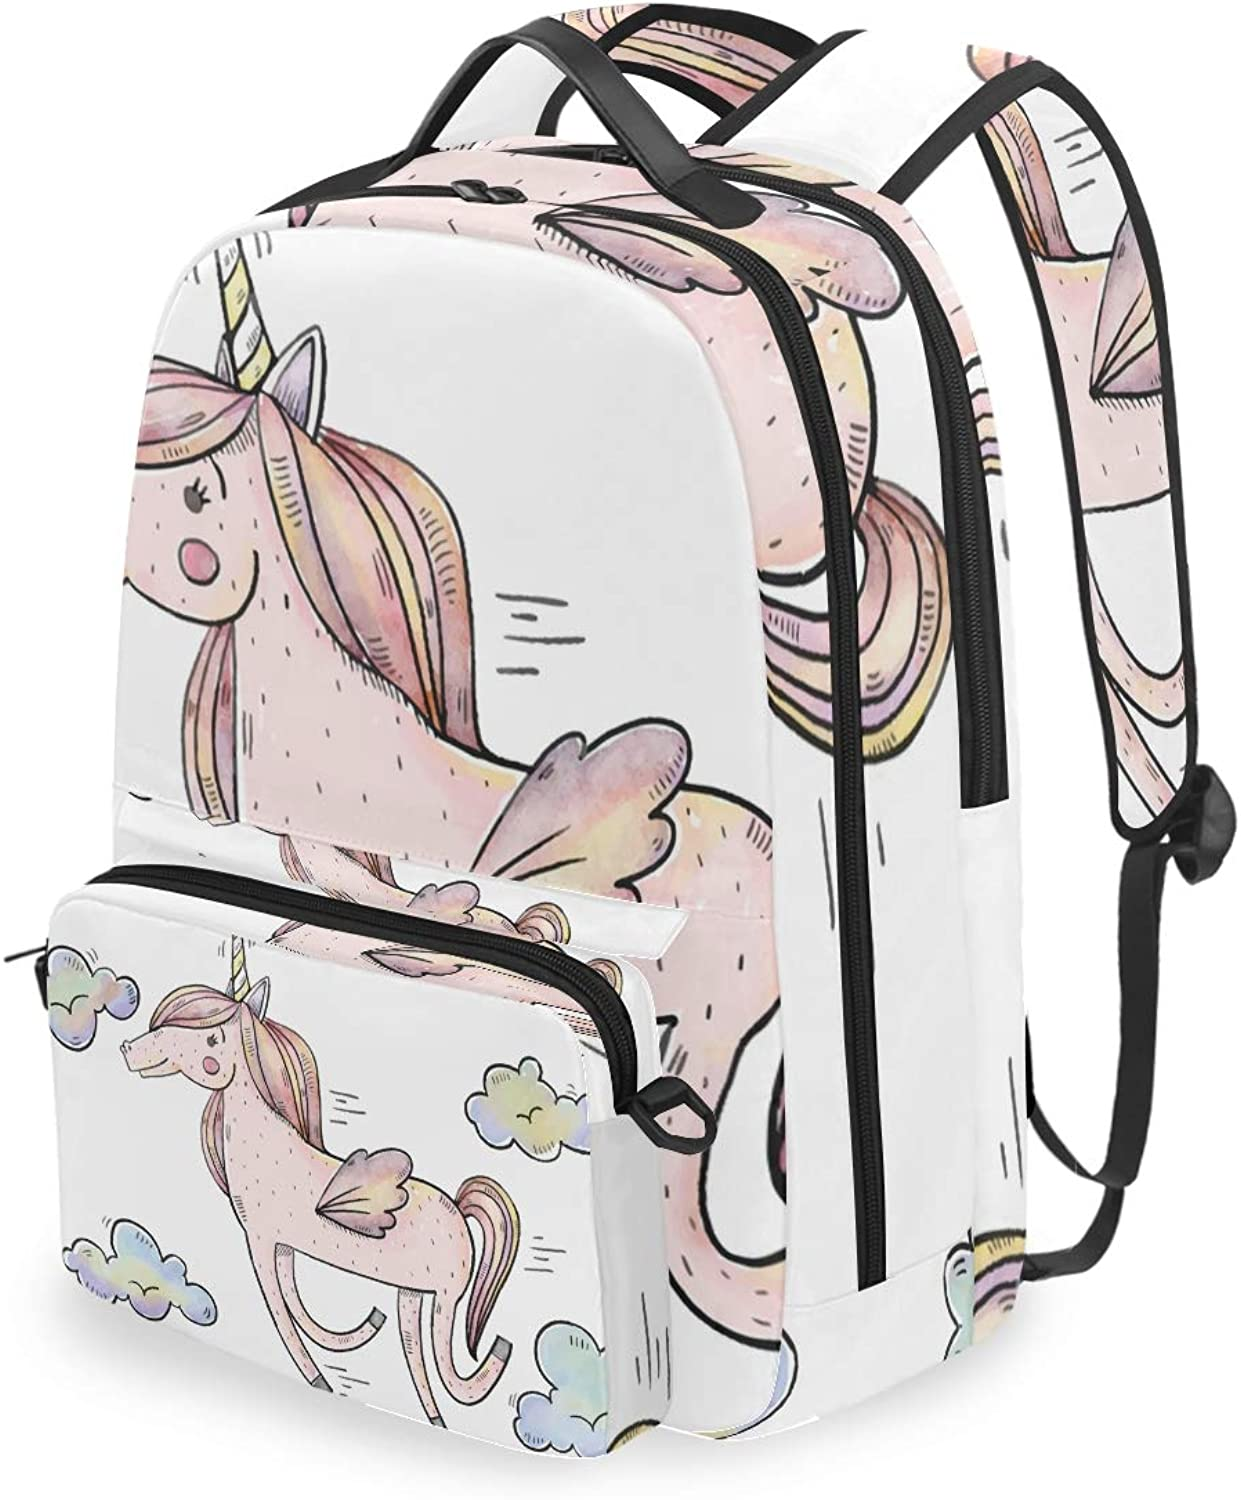 FANTAZIO Backpacks and Cross Bag Running Unicorn School Bag Set